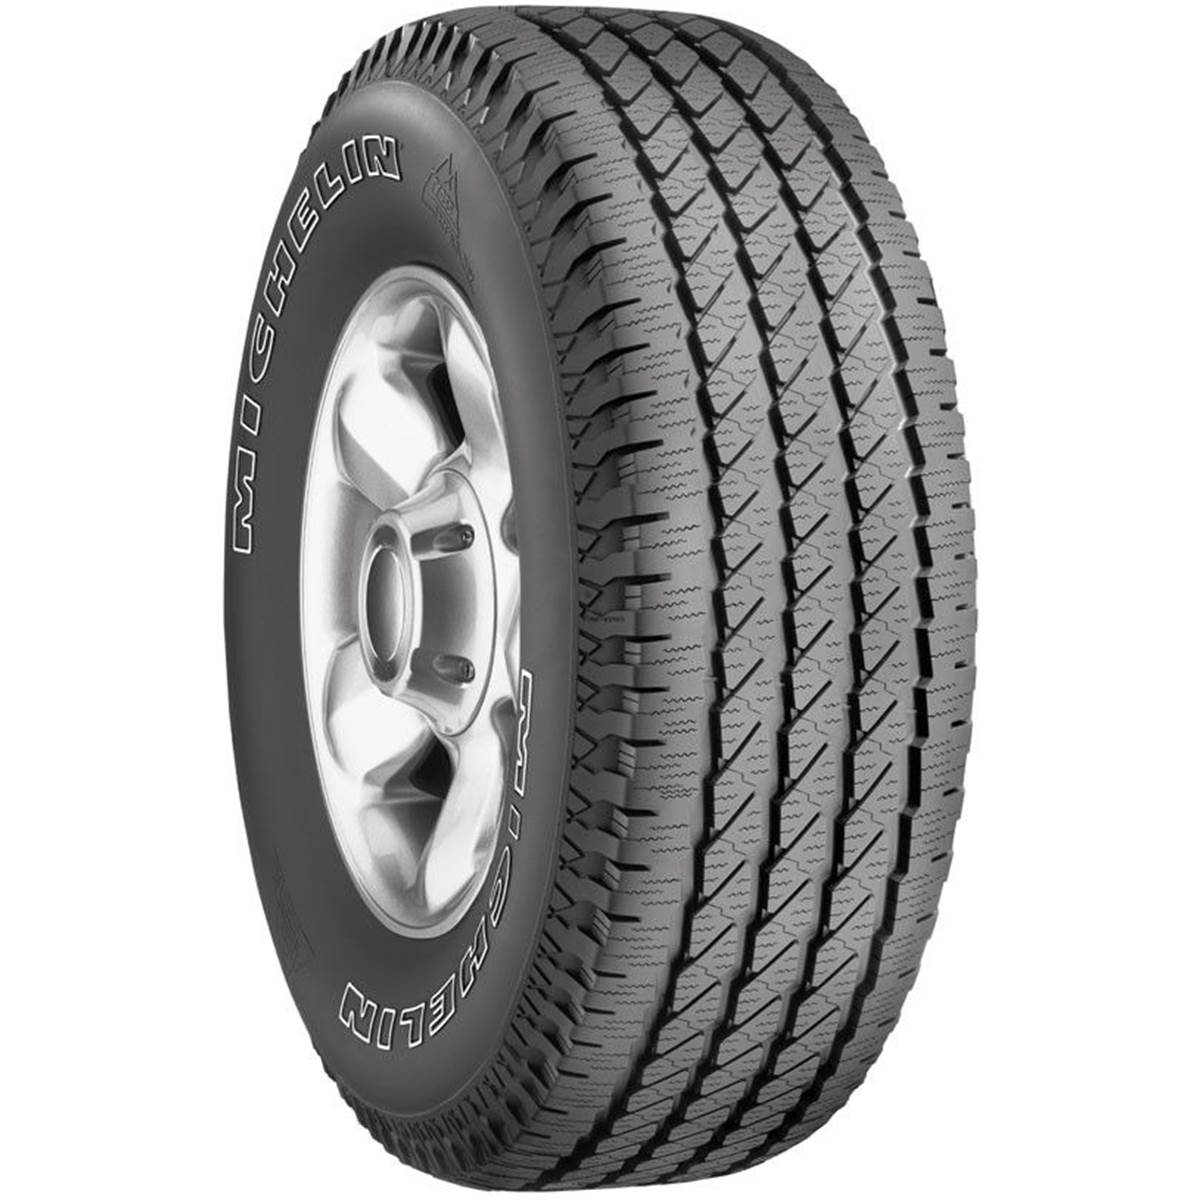 pneu pour 4x4 pneus general tire pour 4x4 goodyear wrangler mt r le pneu 4x4 tout terrain qui. Black Bedroom Furniture Sets. Home Design Ideas